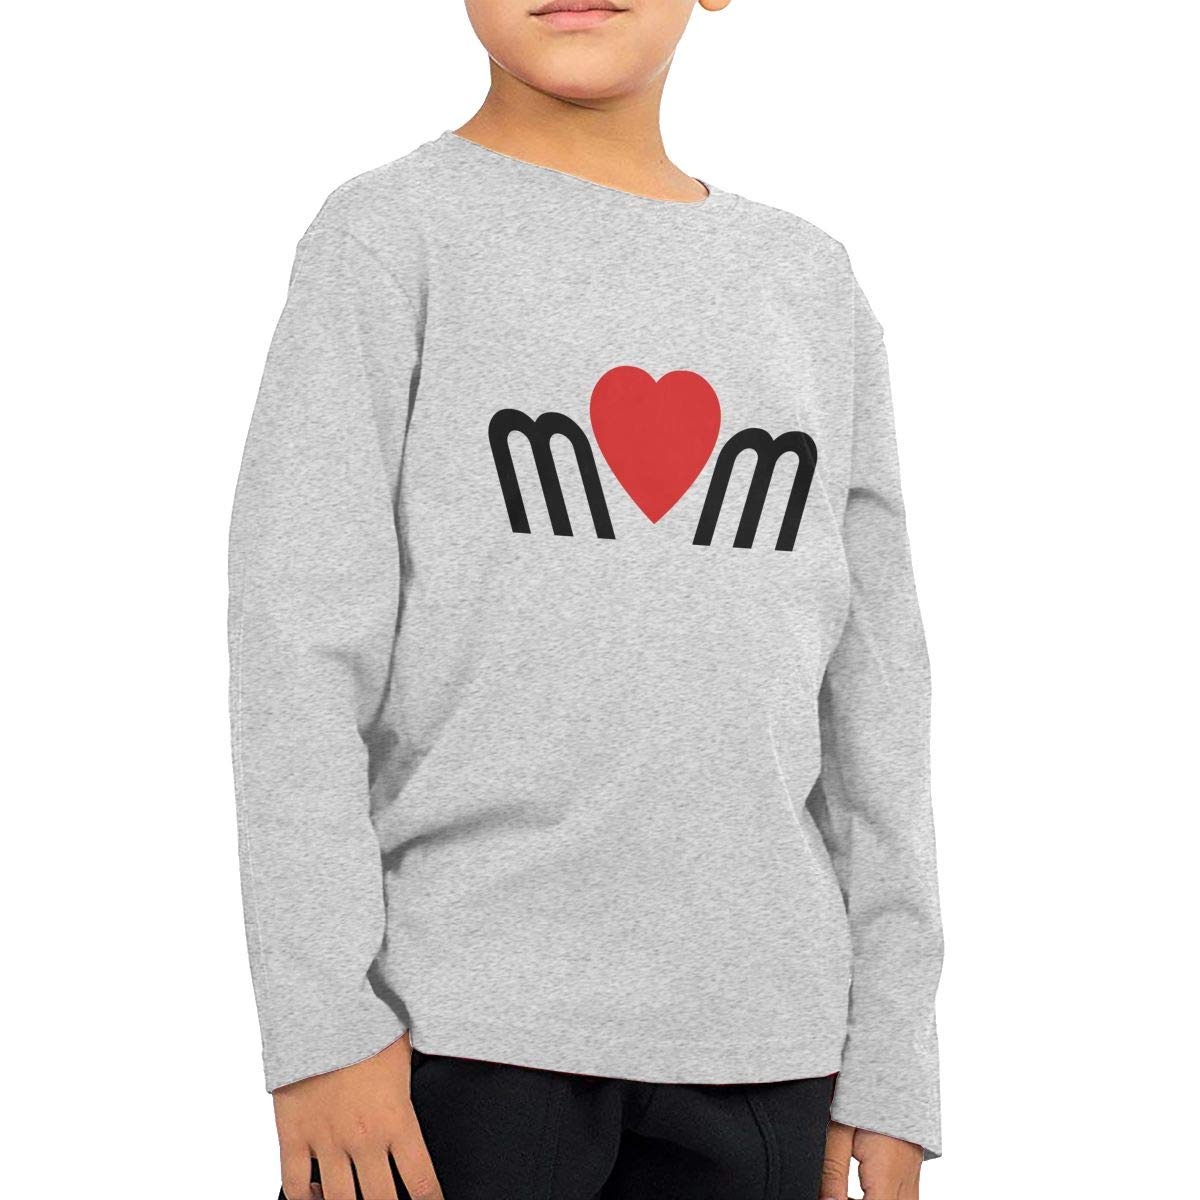 Mom Love Childrens Gray Cotton Long Sleeve Round Neck T-Shirt for Boy Or Girl